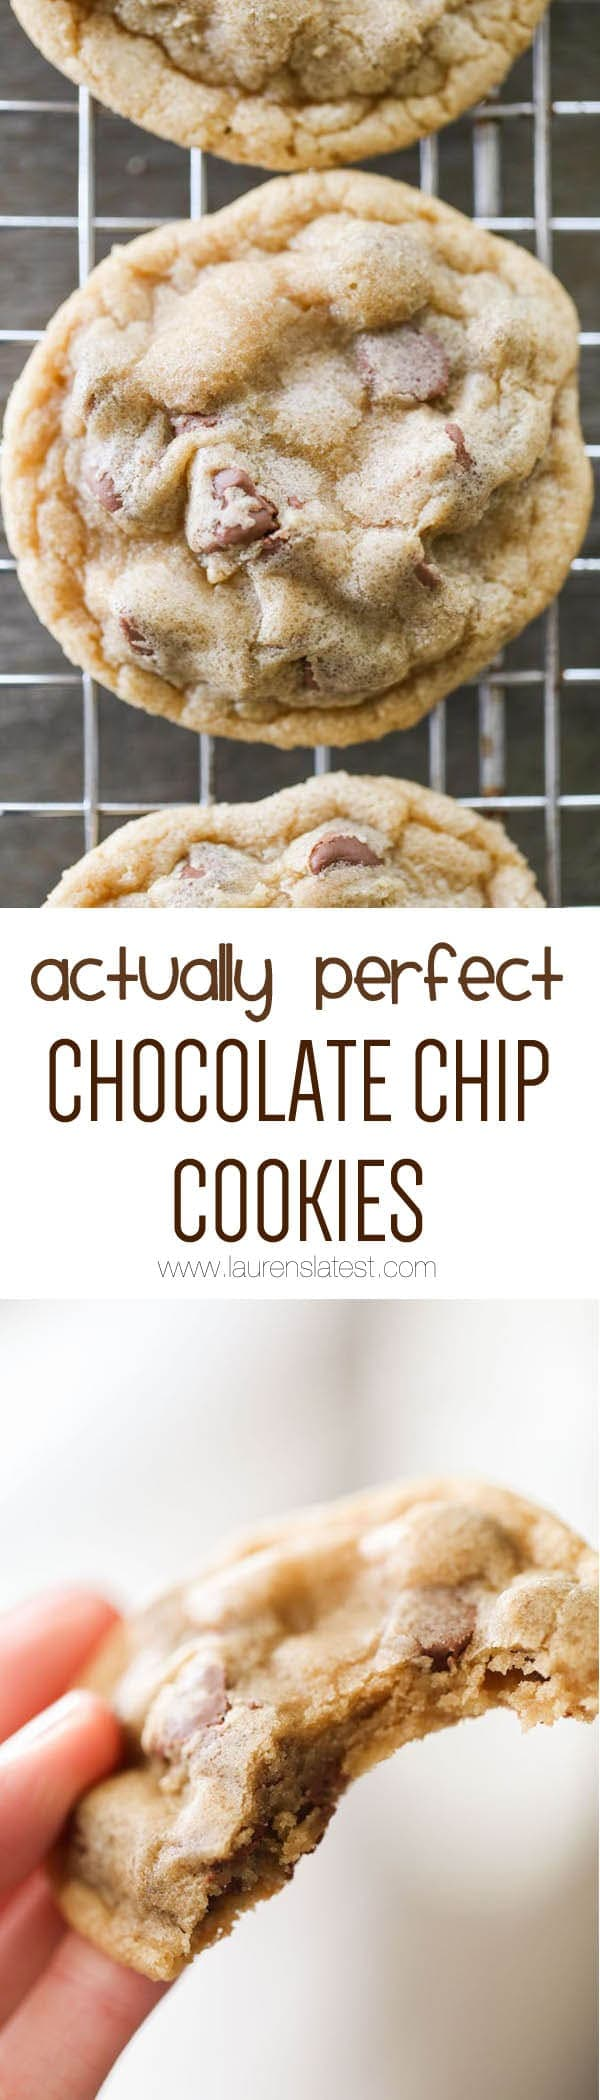 Actually Perfect Chocolate Chip Cookies - Lauren's Latest